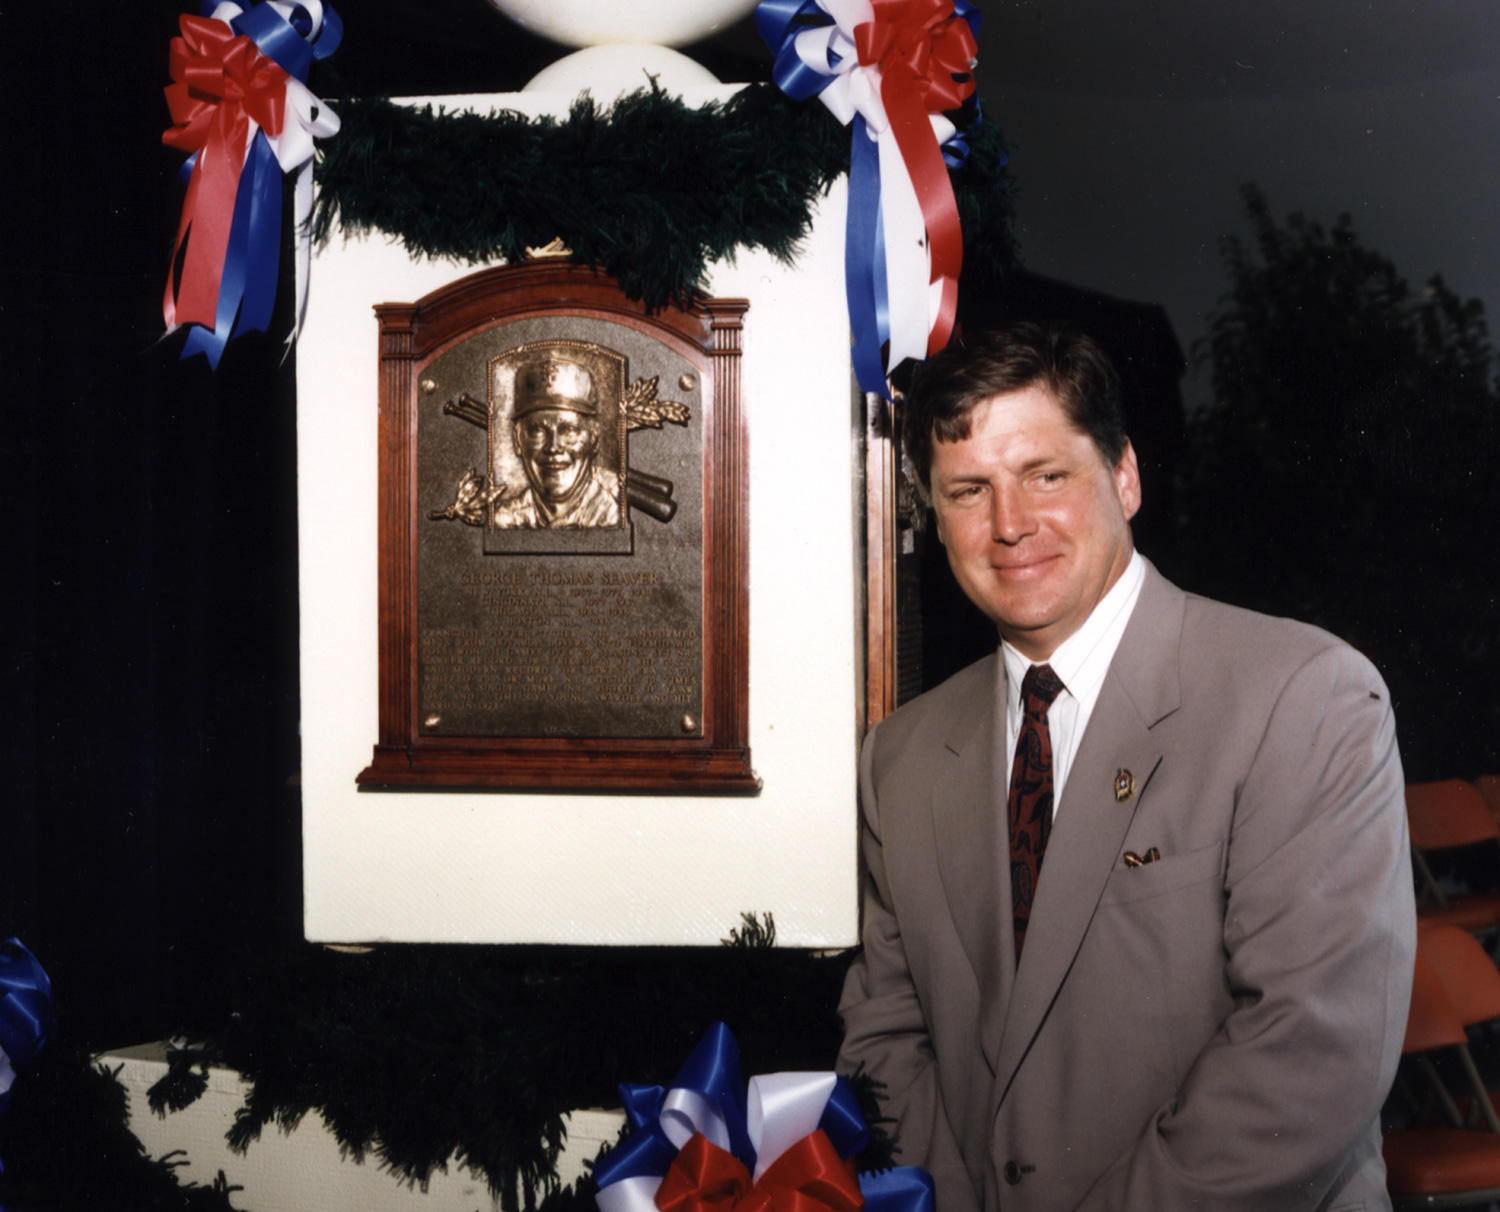 Tom Seaver next to his plaque, during the 1992 National Baseball Hall of Fame Induction Ceremony. He would receive a record-breaking 98.84 percent of the BBWAA vote. (National Baseball Hall of Fame)